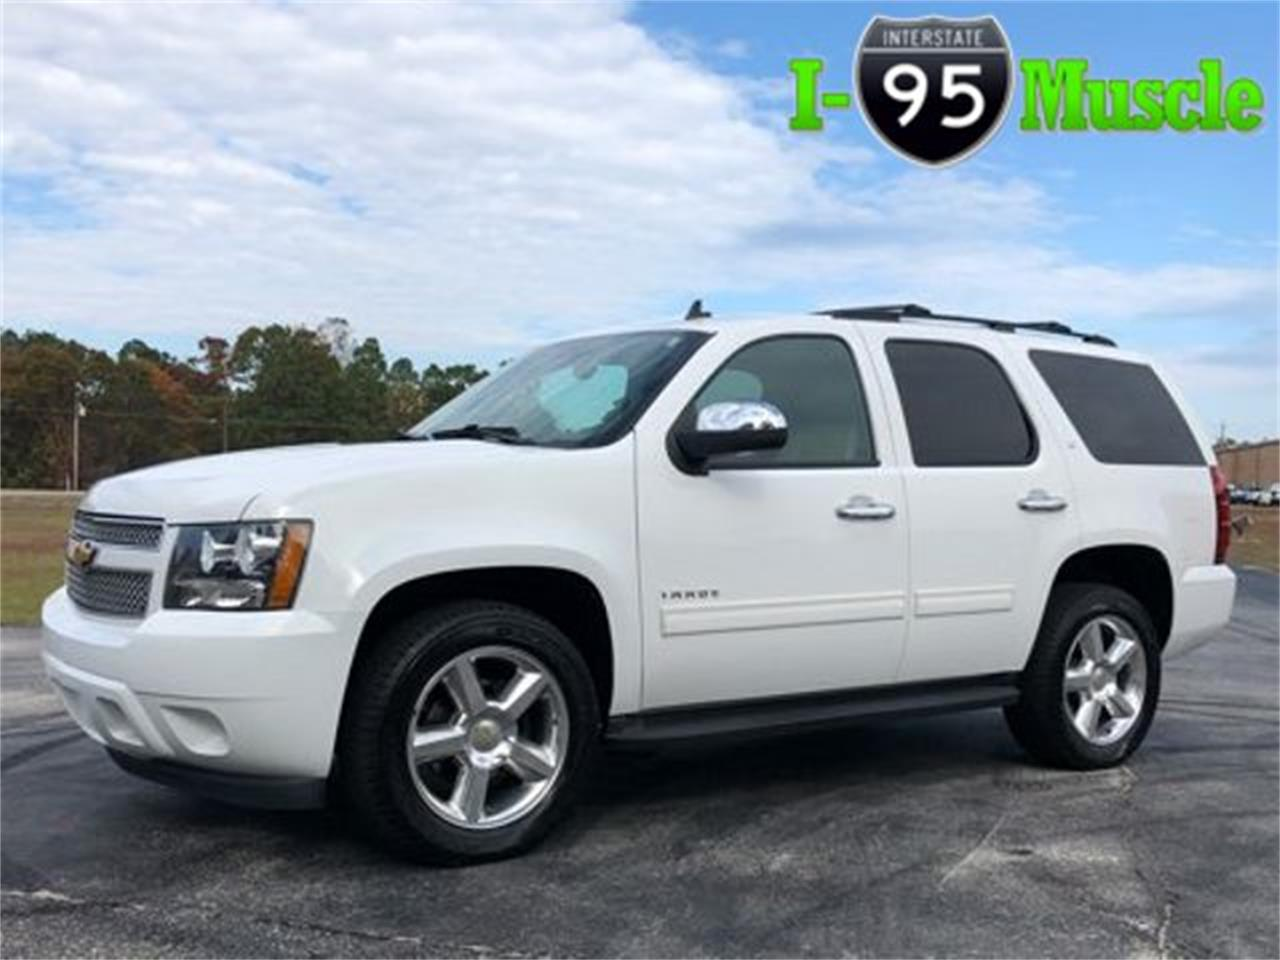 2012 Tahoe For Sale >> For Sale 2012 Chevrolet Tahoe In Hope Mills North Carolina